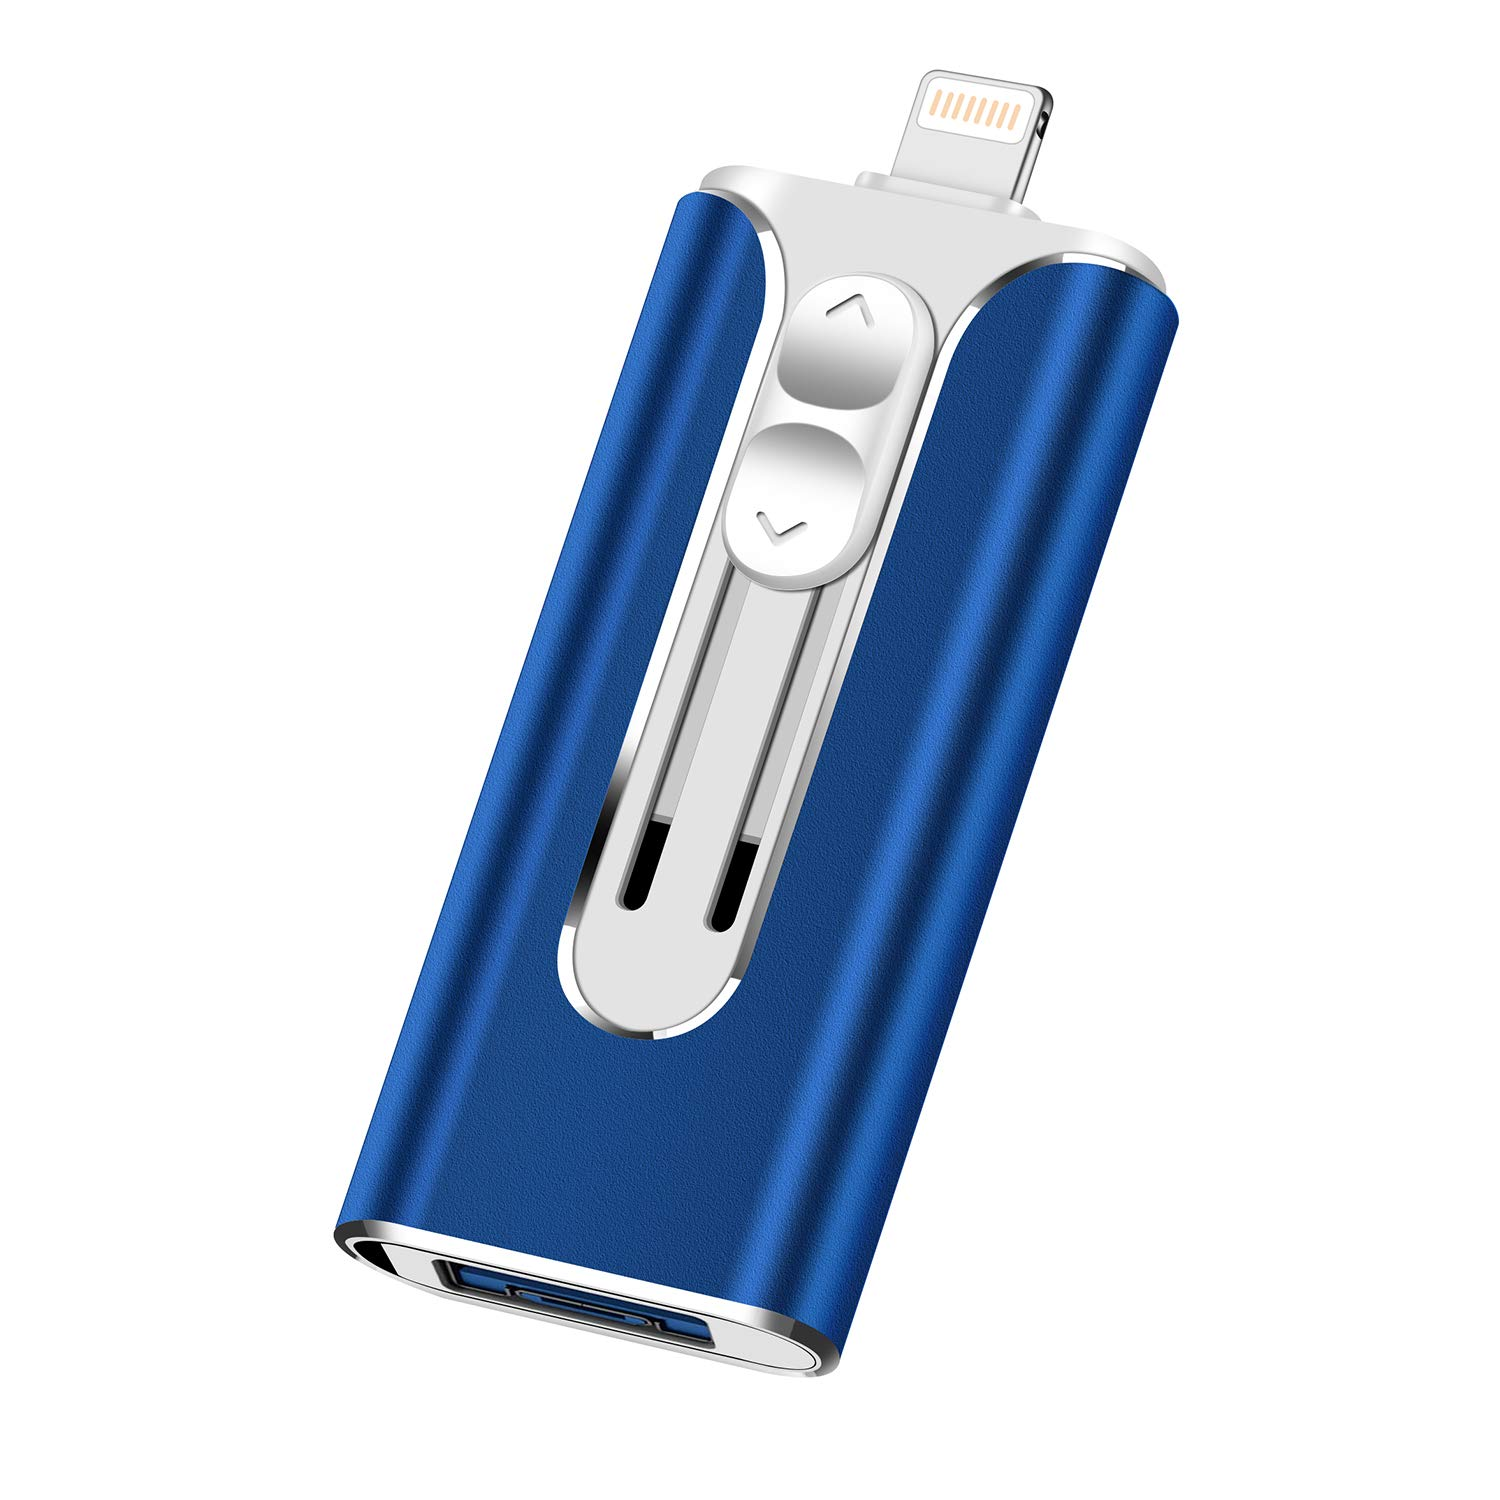 iOS Flash Drive for iPhone Photo Stick 128GB UPSTONE Memory Stick USB 3.0flash Drive Lightning Memory Stick for iPhone iPad Android and Computers (blue-128GB)